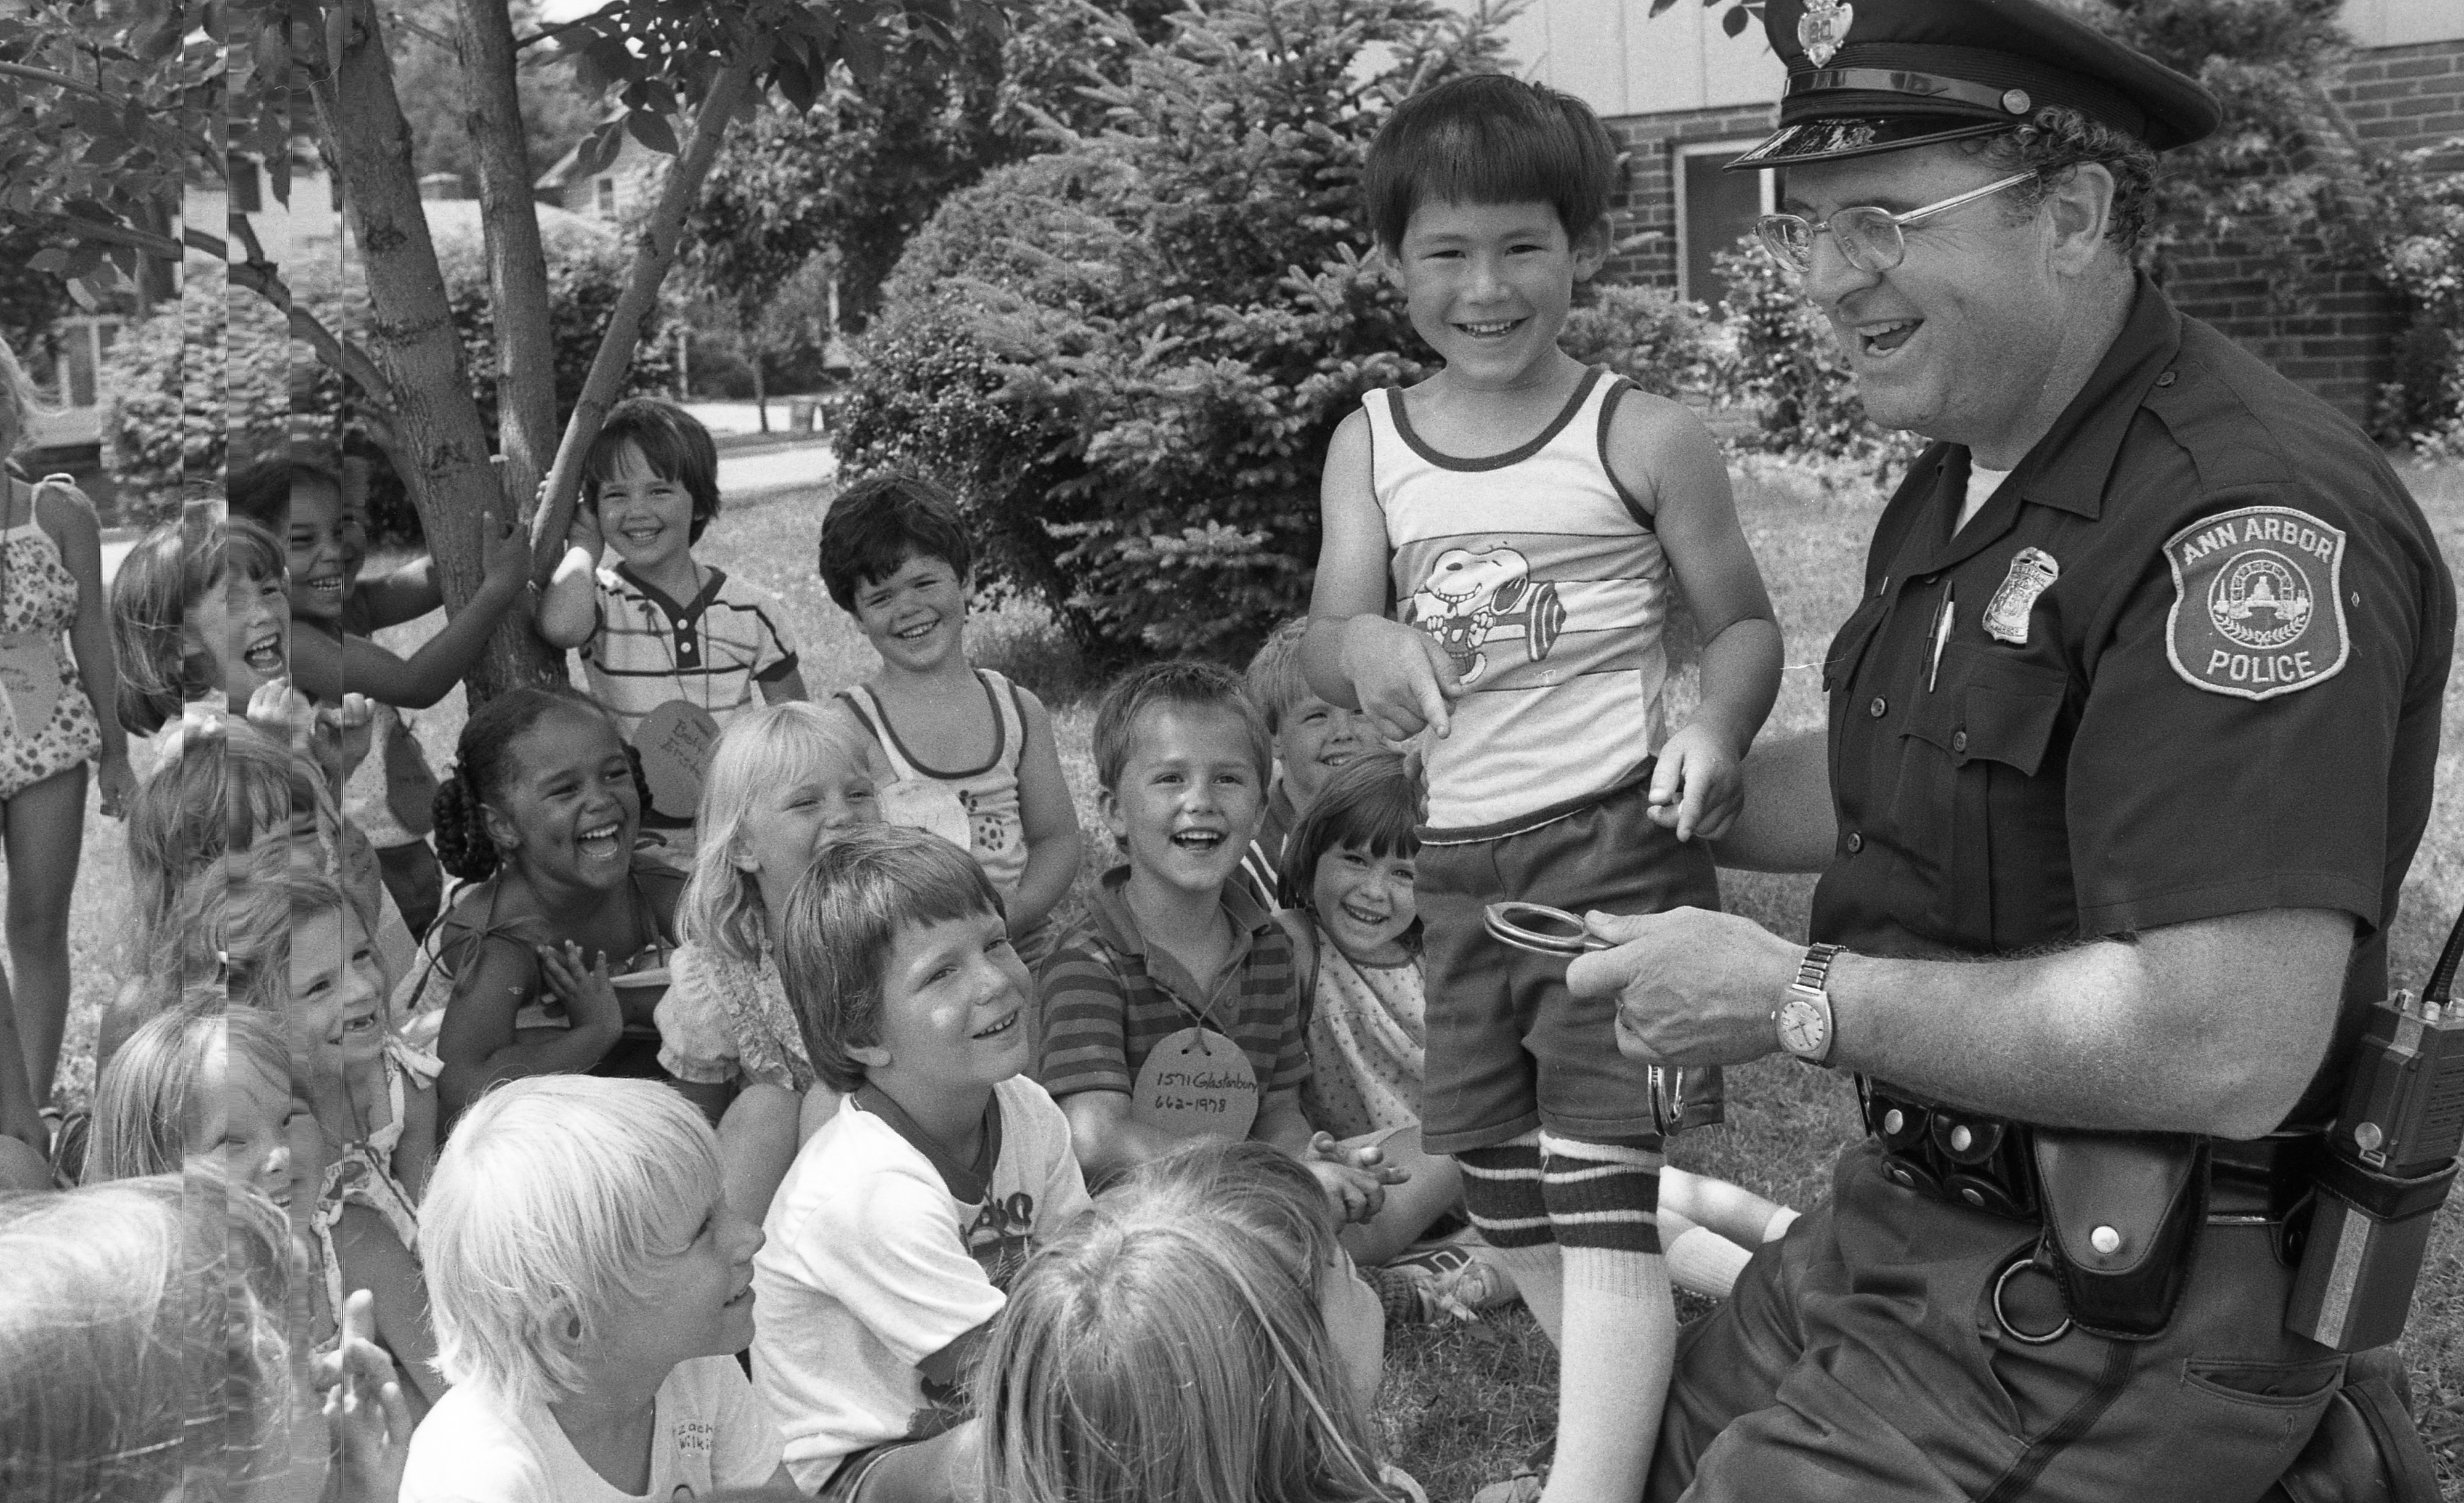 Ann Arbor Police Patrolman Patrick Nolan a Big Hit at Safety Town, July 1982 image